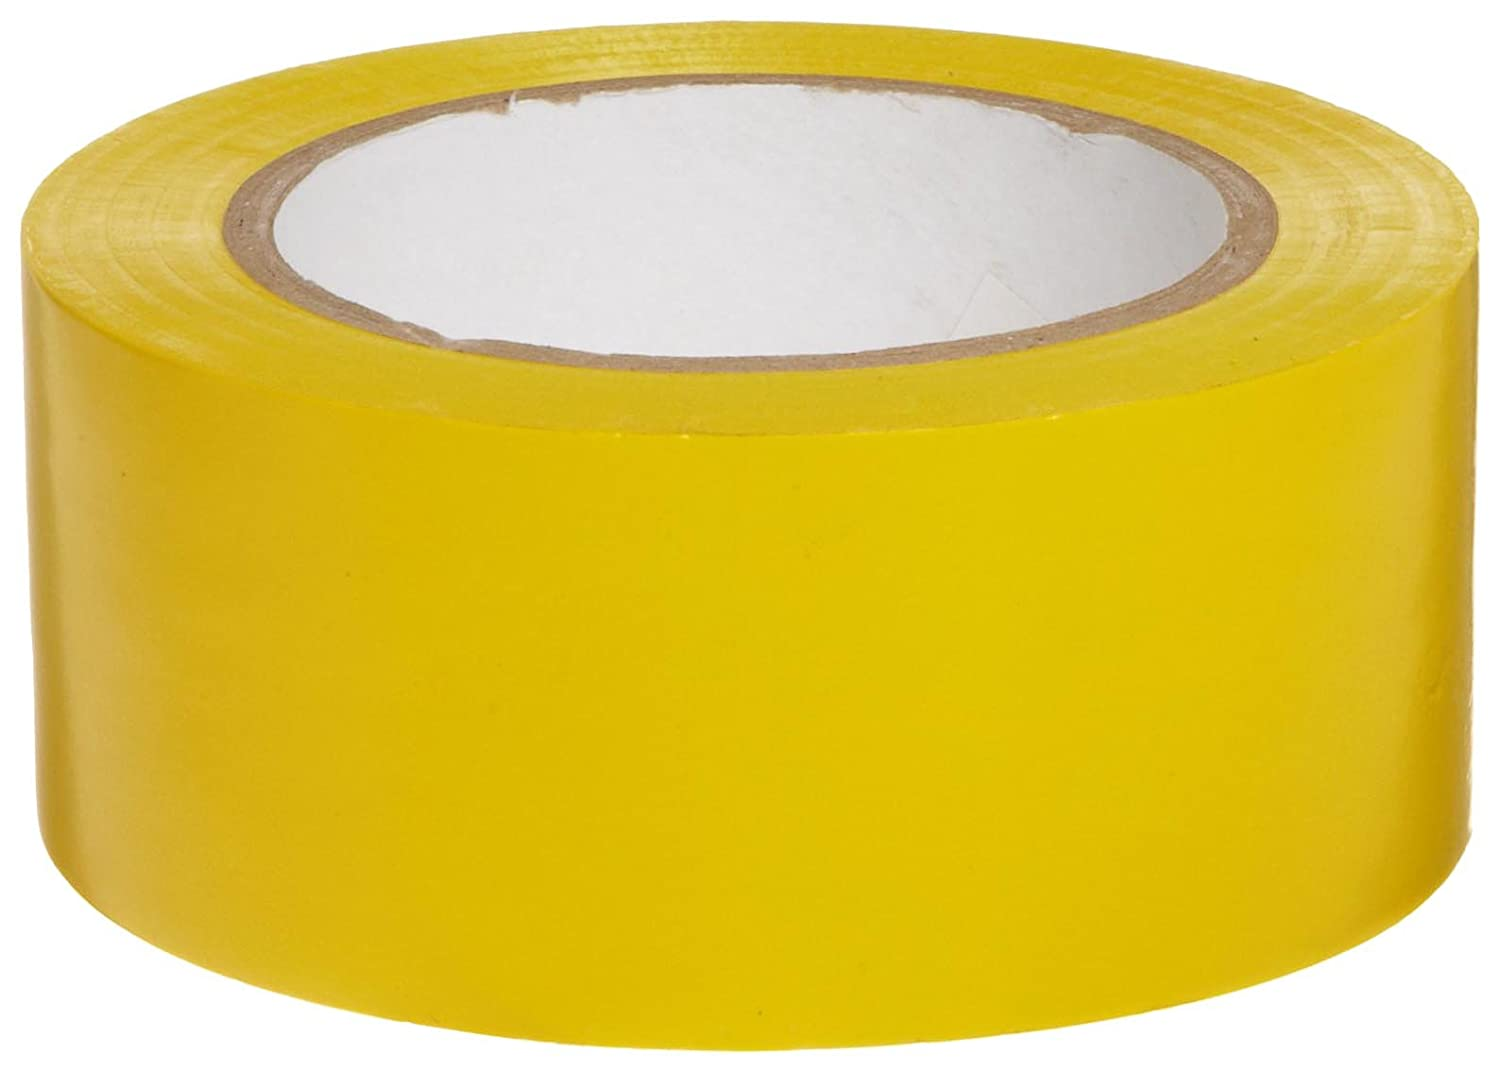 marking floors us toughstripe en product tape floor part bradyid brady com